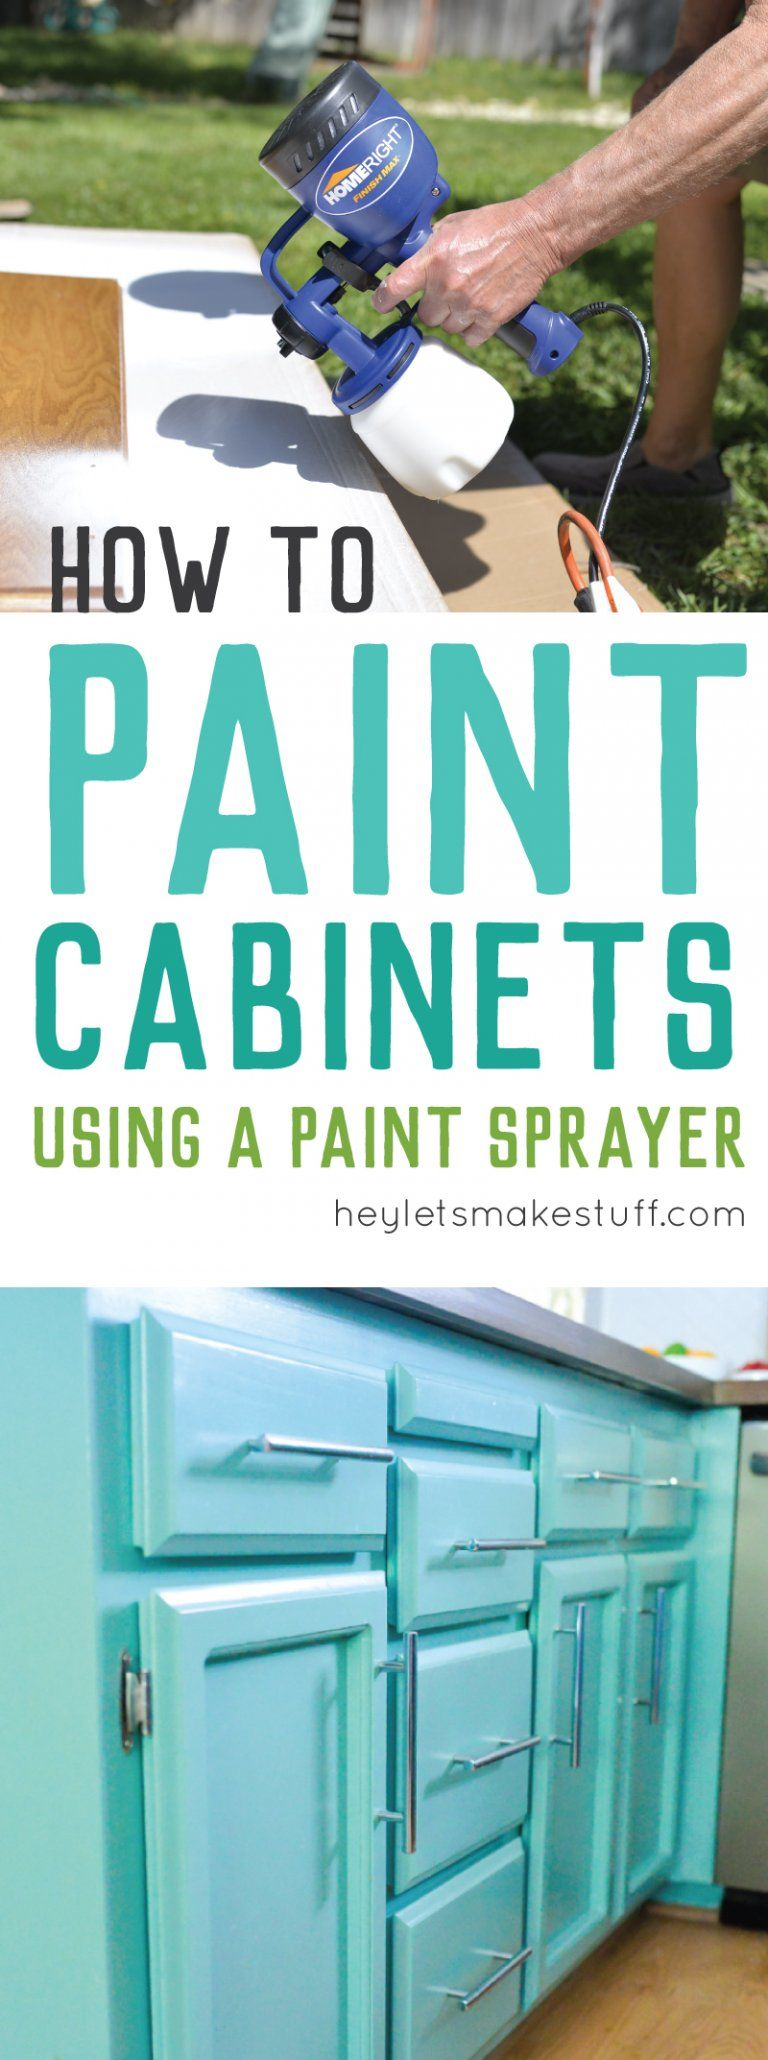 Painting cabinets? Get a perfect finis by taking the time to paint ...